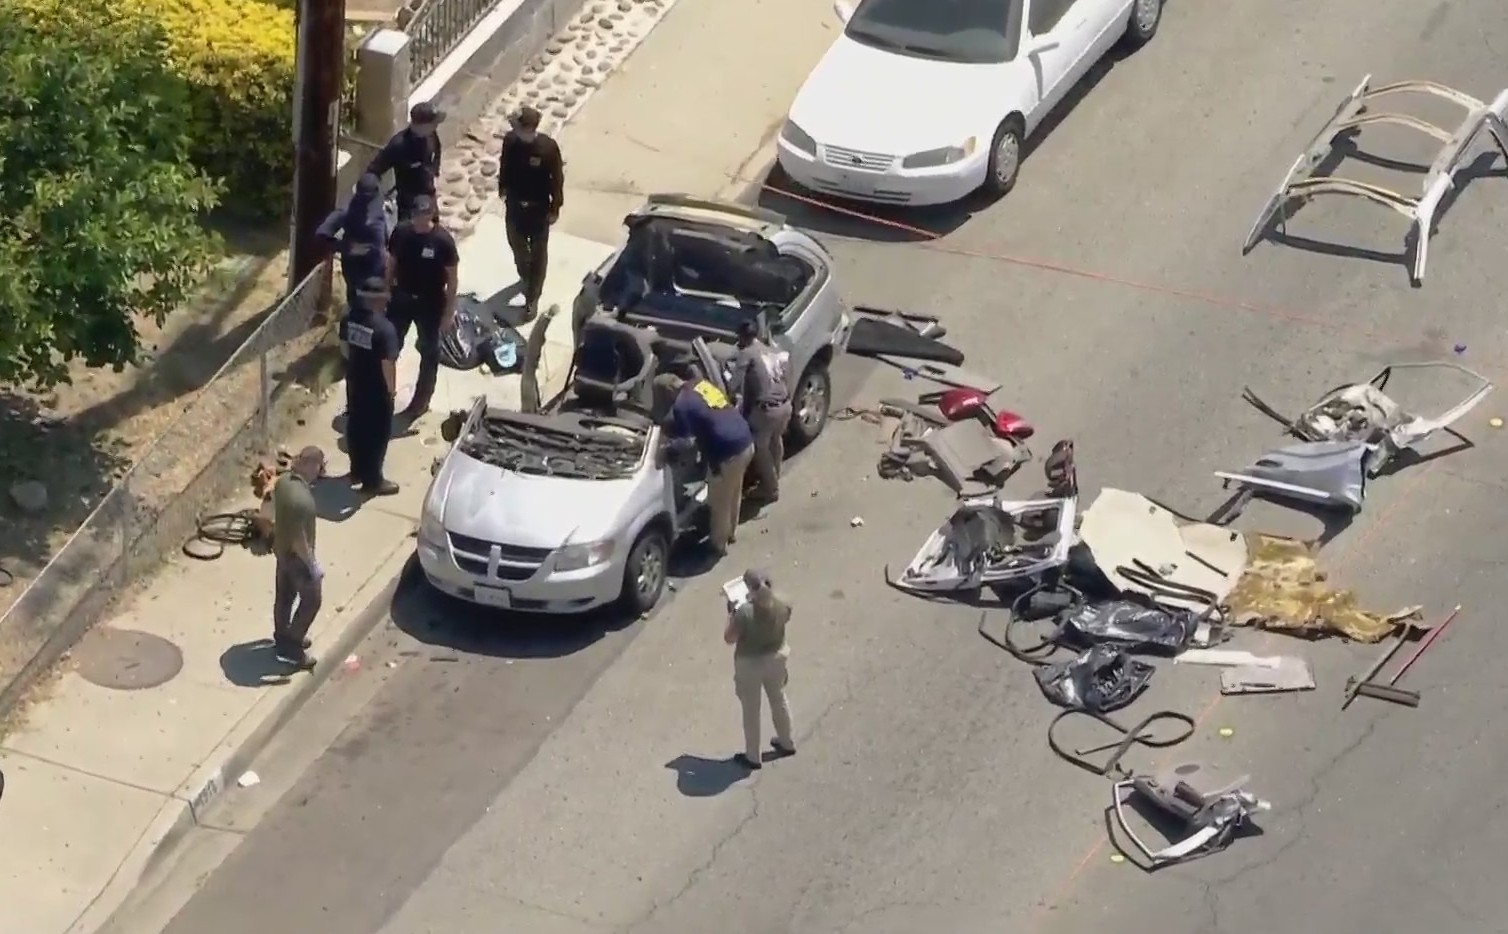 A vehicle was heavily damaged by an explosion in Montclair on June 14, 2021. (KTLA)